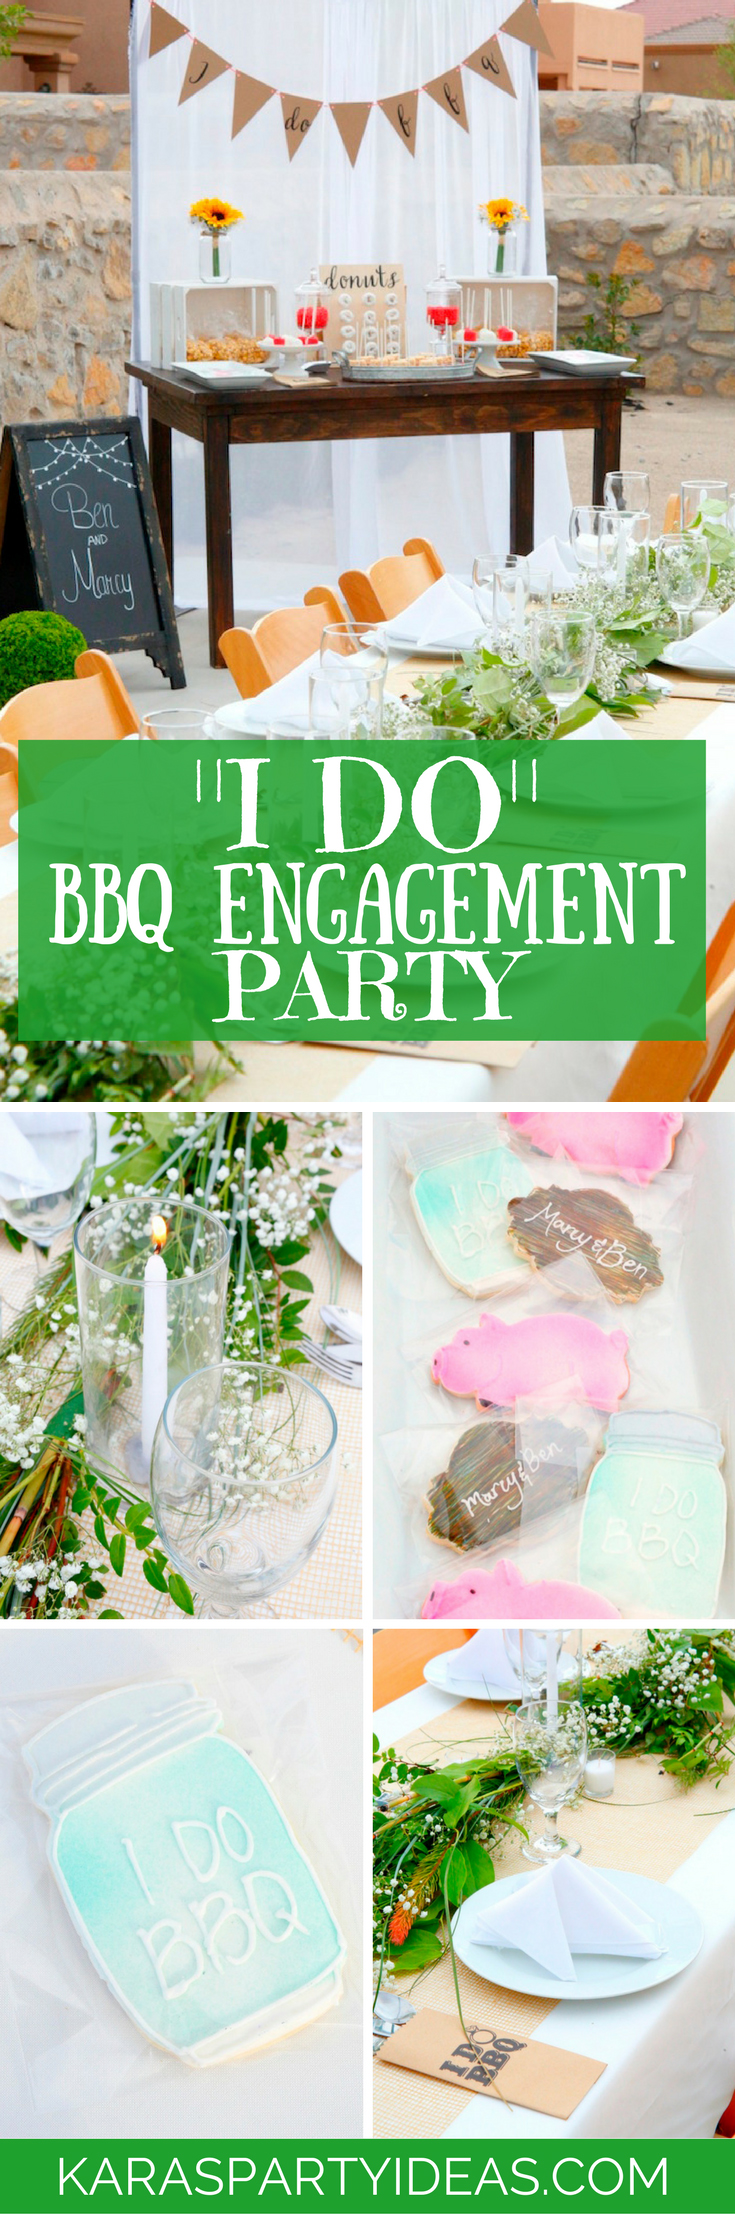 I Do BBQ Engagement Party via Kara's Party Ideas - KarasPartyIdeas.com